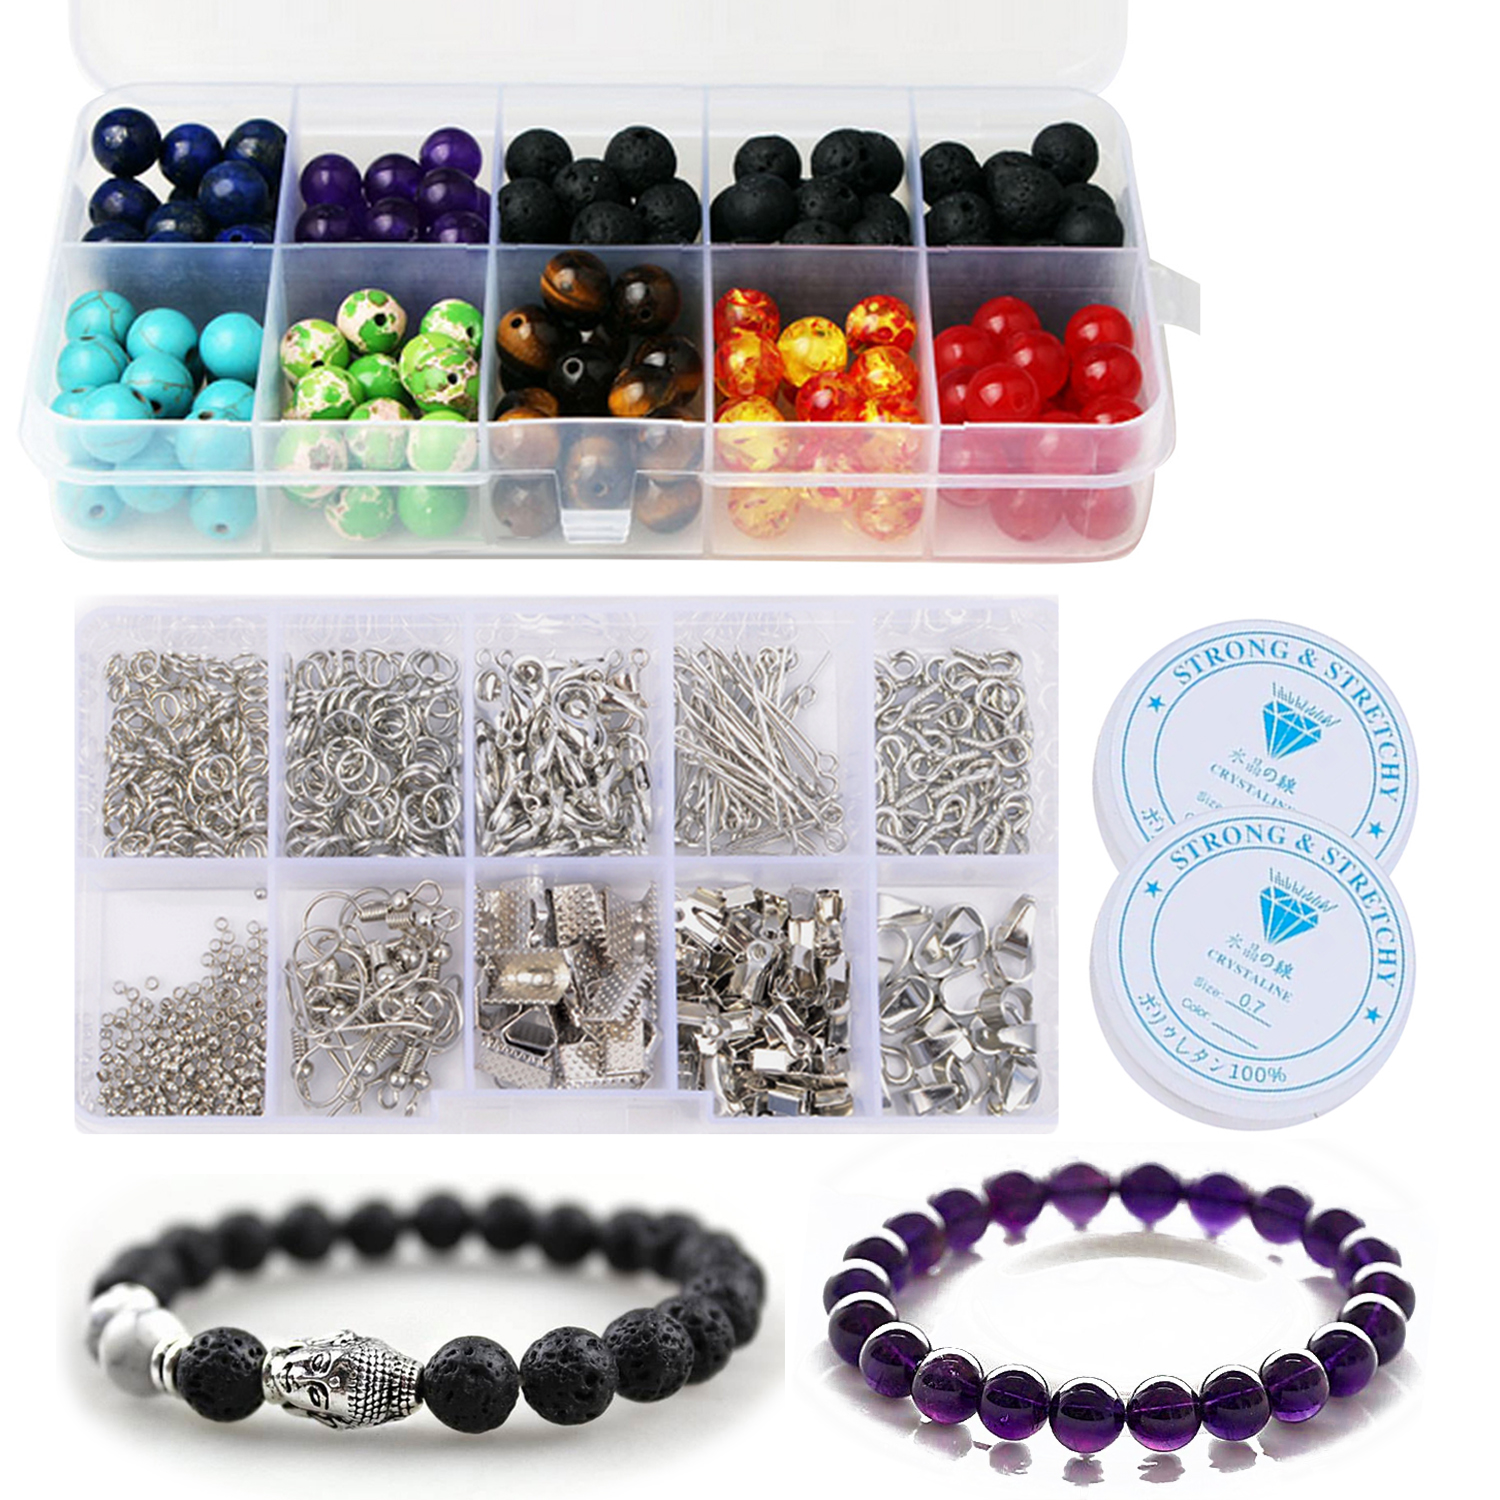 640Pcs DIY Craft Making Finding Tool Kits With 200Pcs 8mm Lava Chakra Beads 2 Roll Crystal String Toys Jewelry Bracelet Handmake